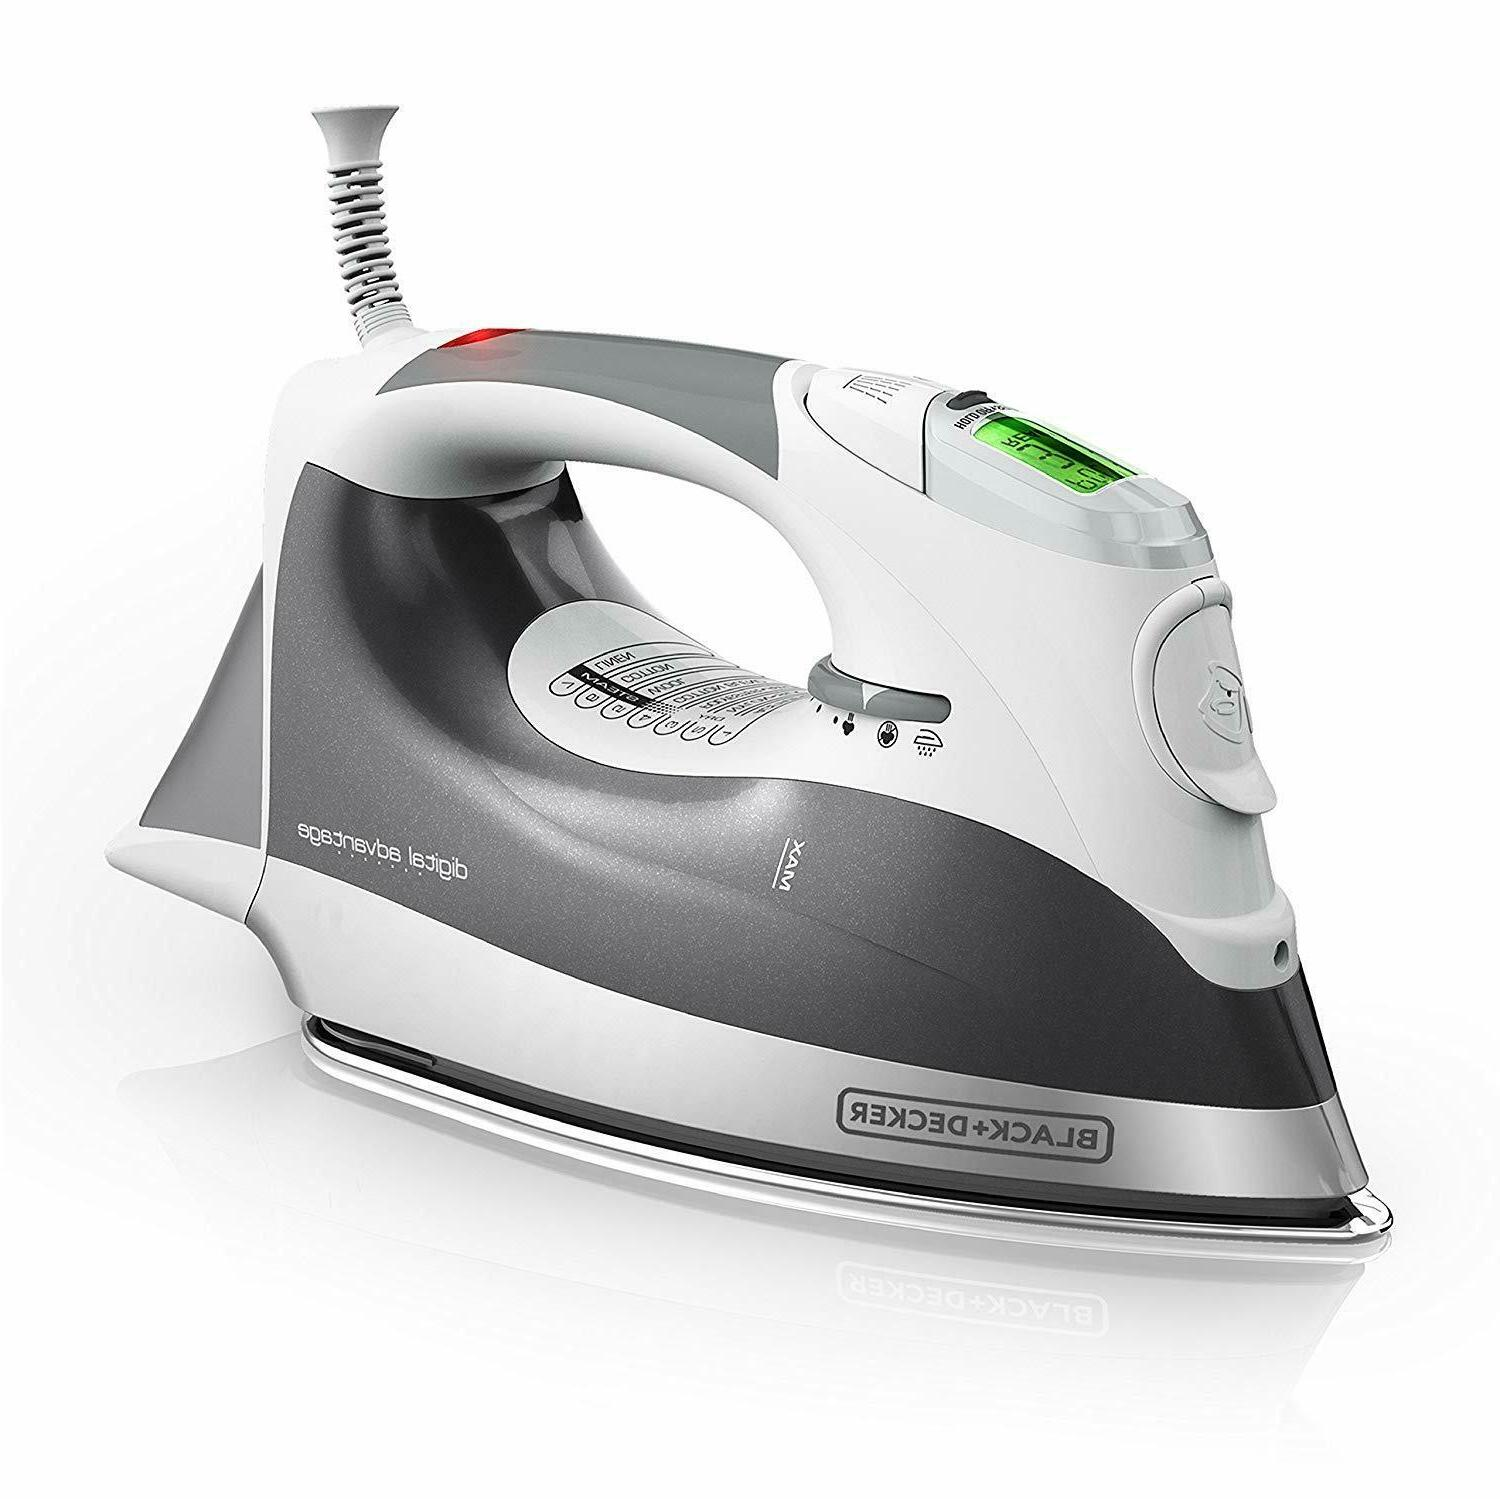 digital advantage professional steam iron lcd screen